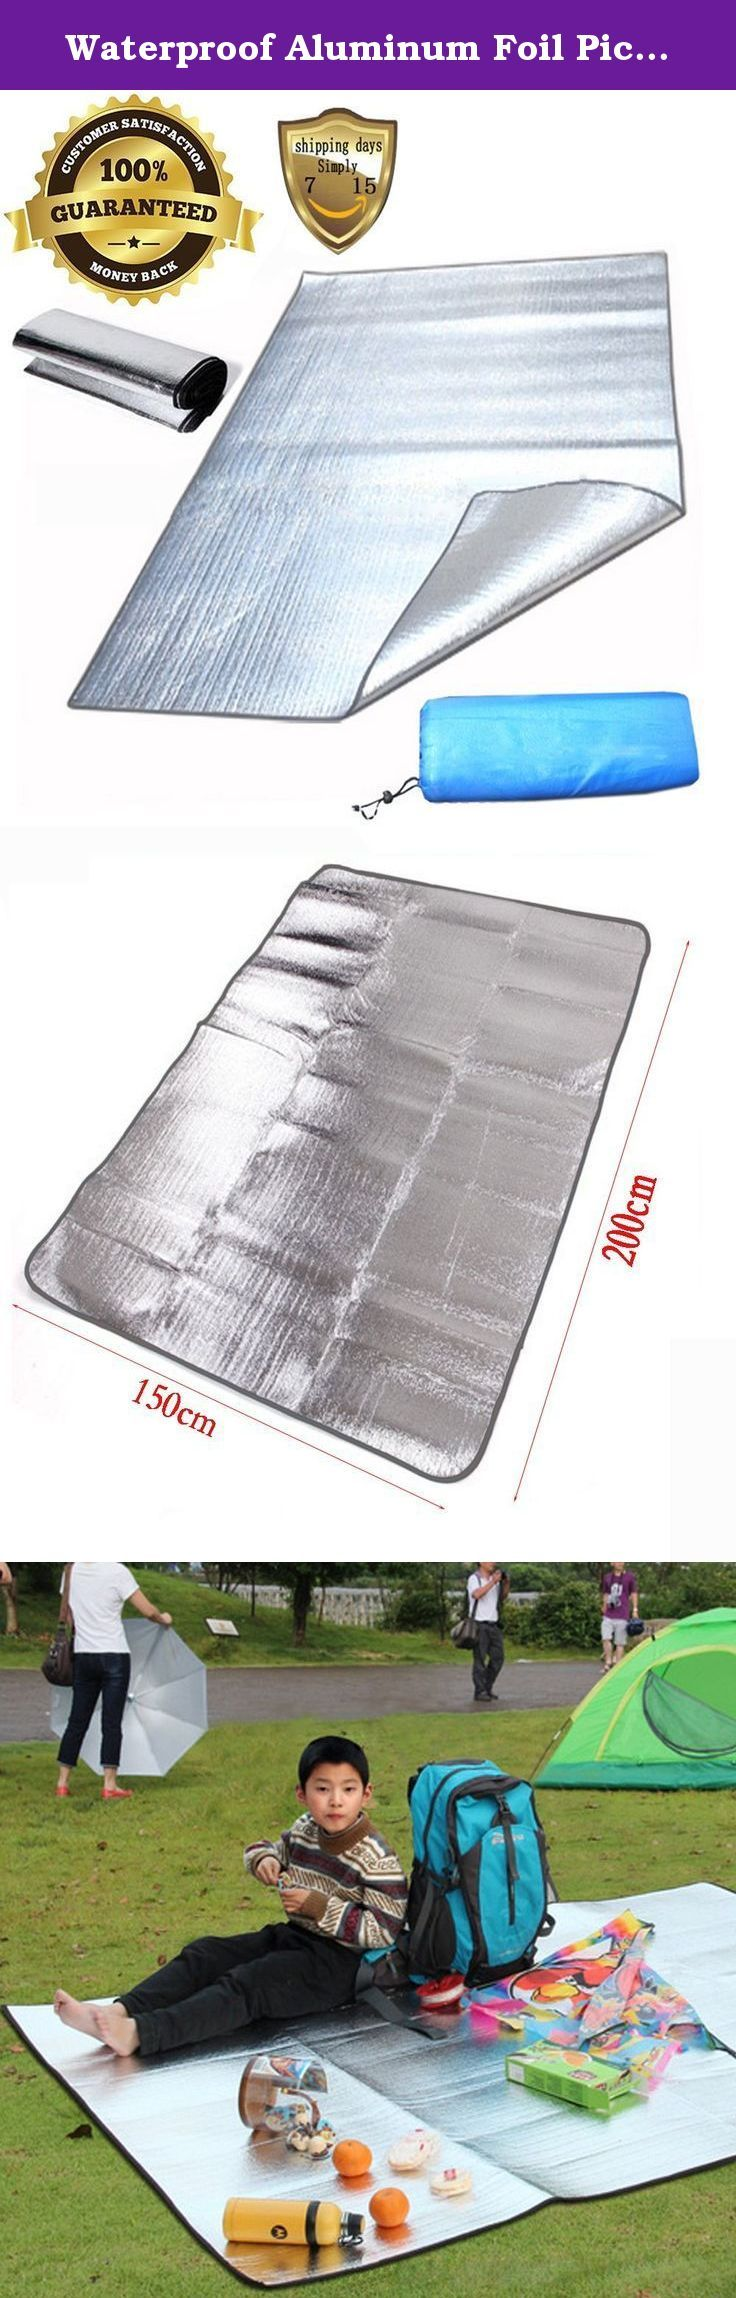 Waterproof Aluminum Foil Picnic Mat Beach Sleeping Mat Pad Waterproof Dampproof for Travel Camping Picnic Hiking Beach Sleeping Pad. Foil dampproof mat has a certain thickness, suitable for tents, picnic, camping, etc. Up or Folds Up, Non-Slip Surface, Cushioning for Added Support, Textured Surface, Latex-Free. Eco-friendly, biodegradable, recyclable, allergen, lead and PVC free 2M x 1.5M / 6.5Ft x 5 Ft (L*W). Light weight, easy to receive, can be folded up to receive in package, light…